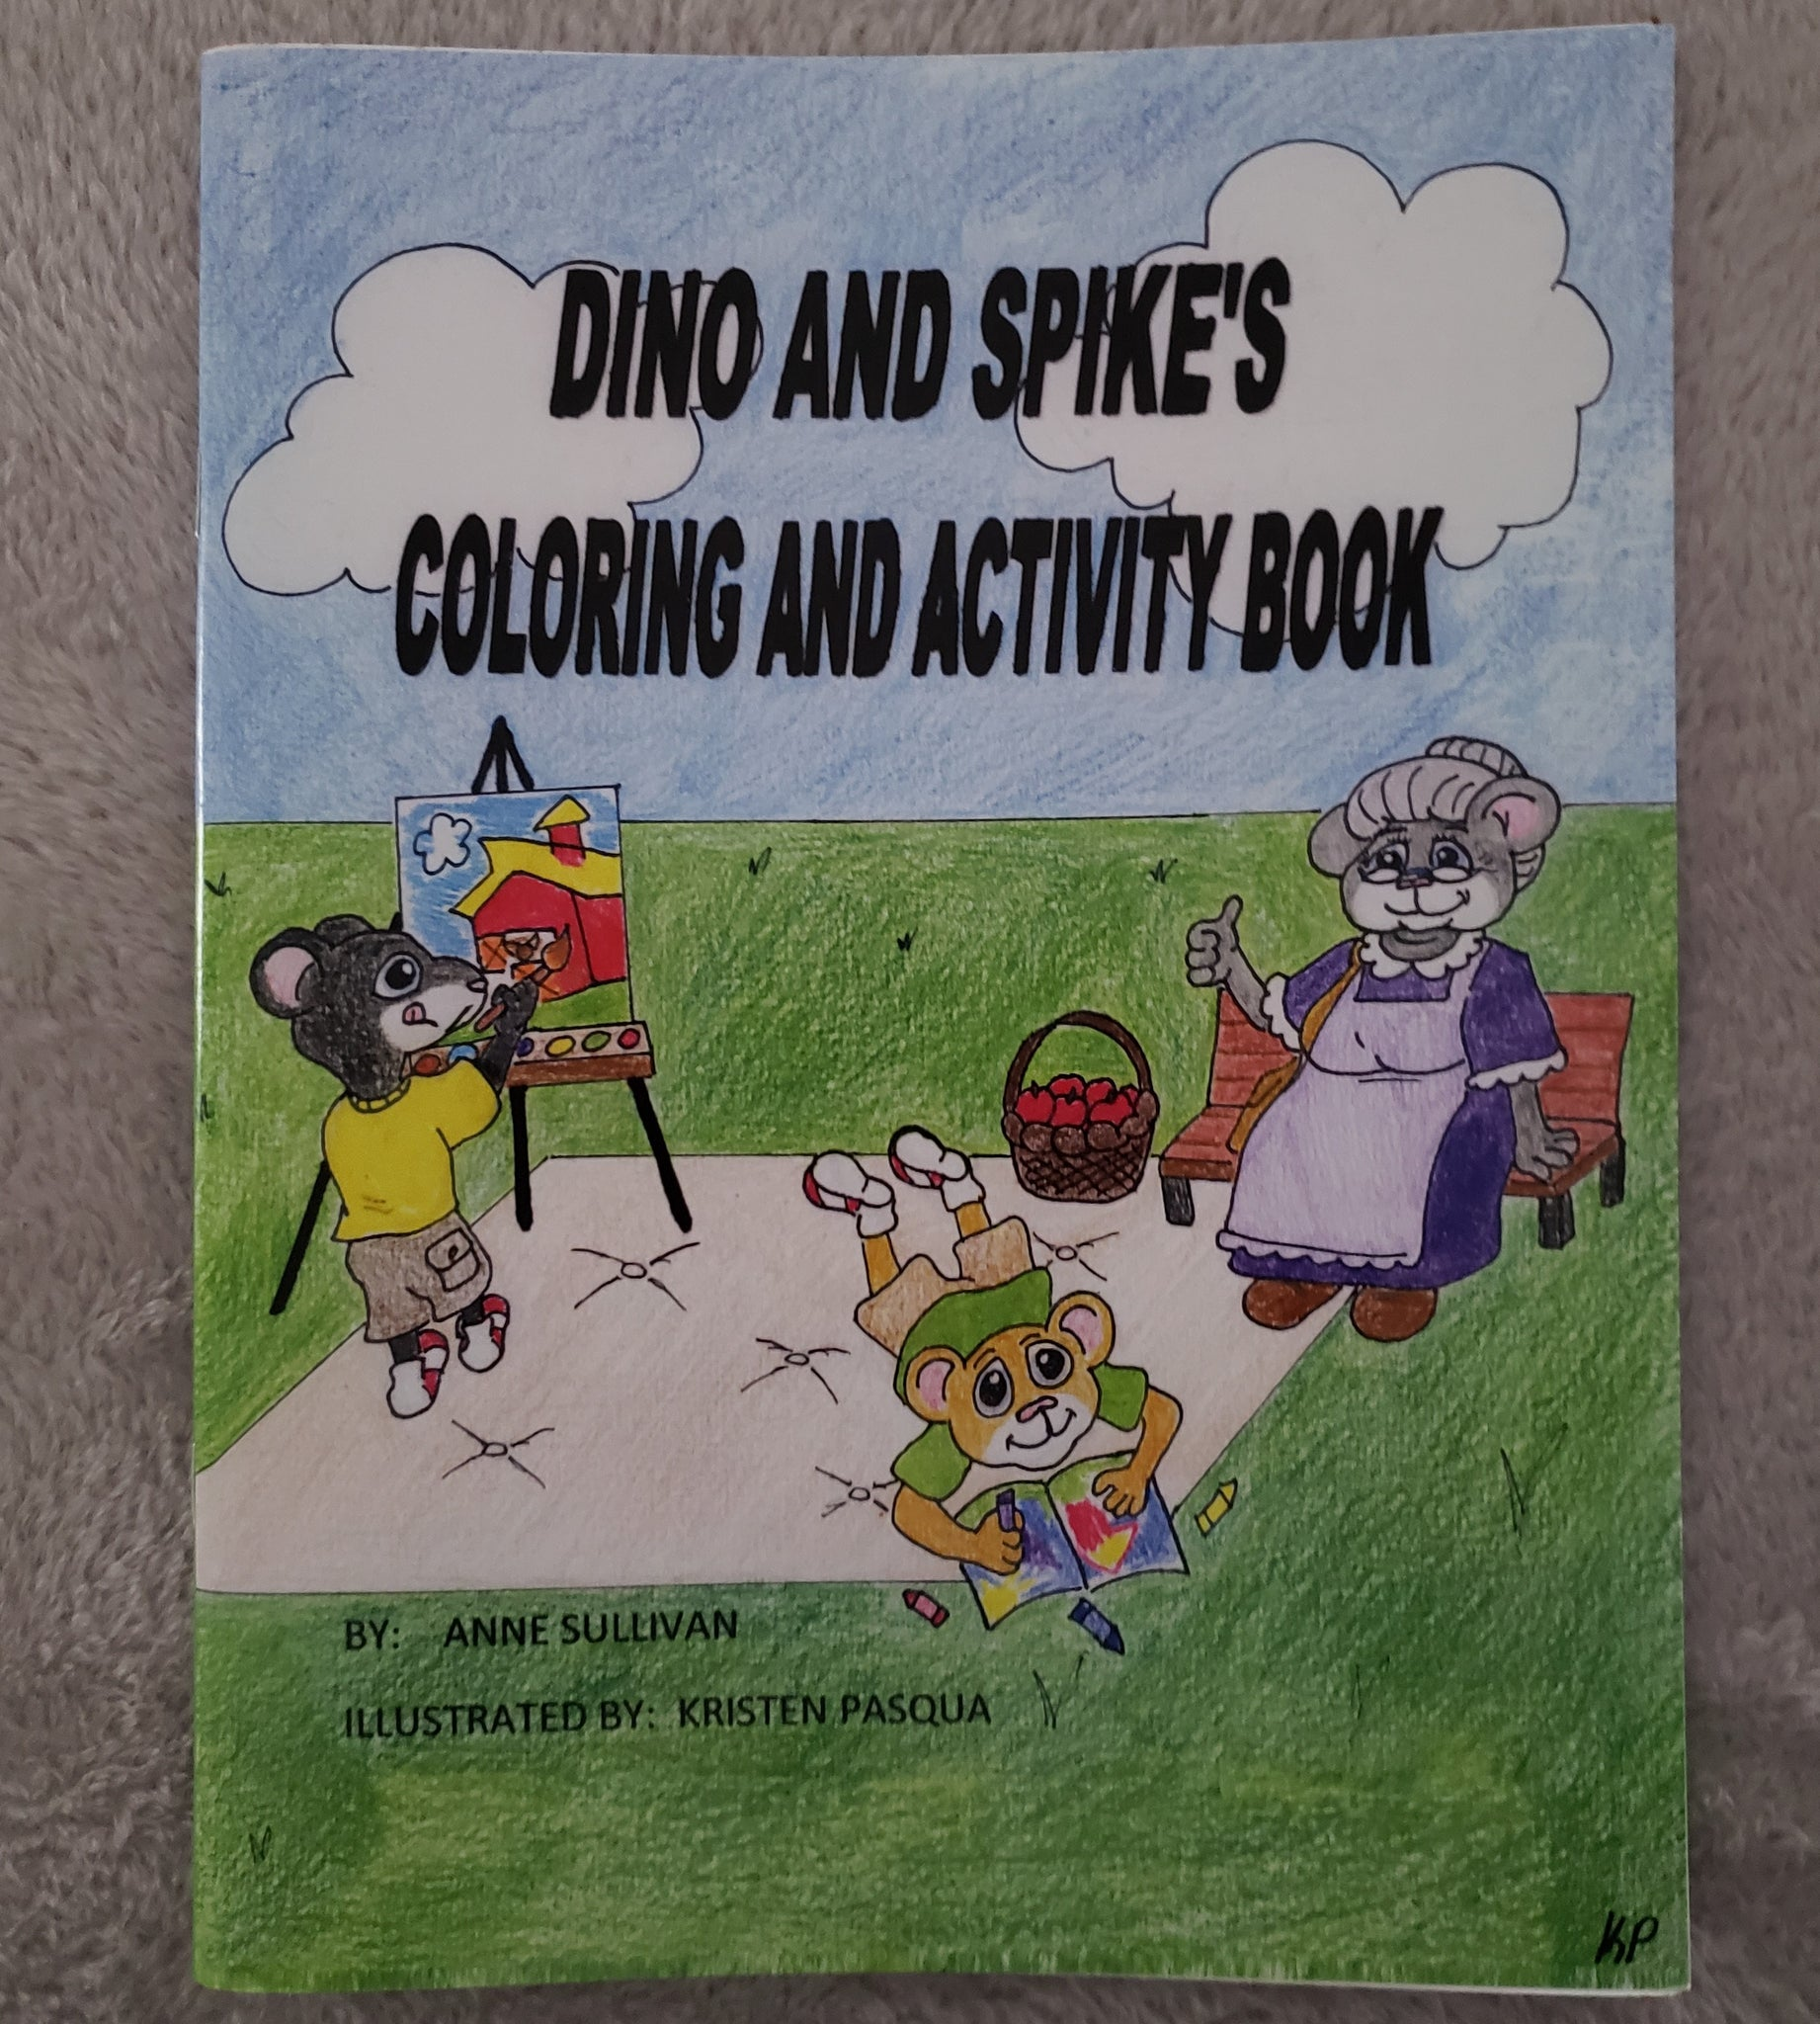 Dino and Spike's Coloring and Activity Book